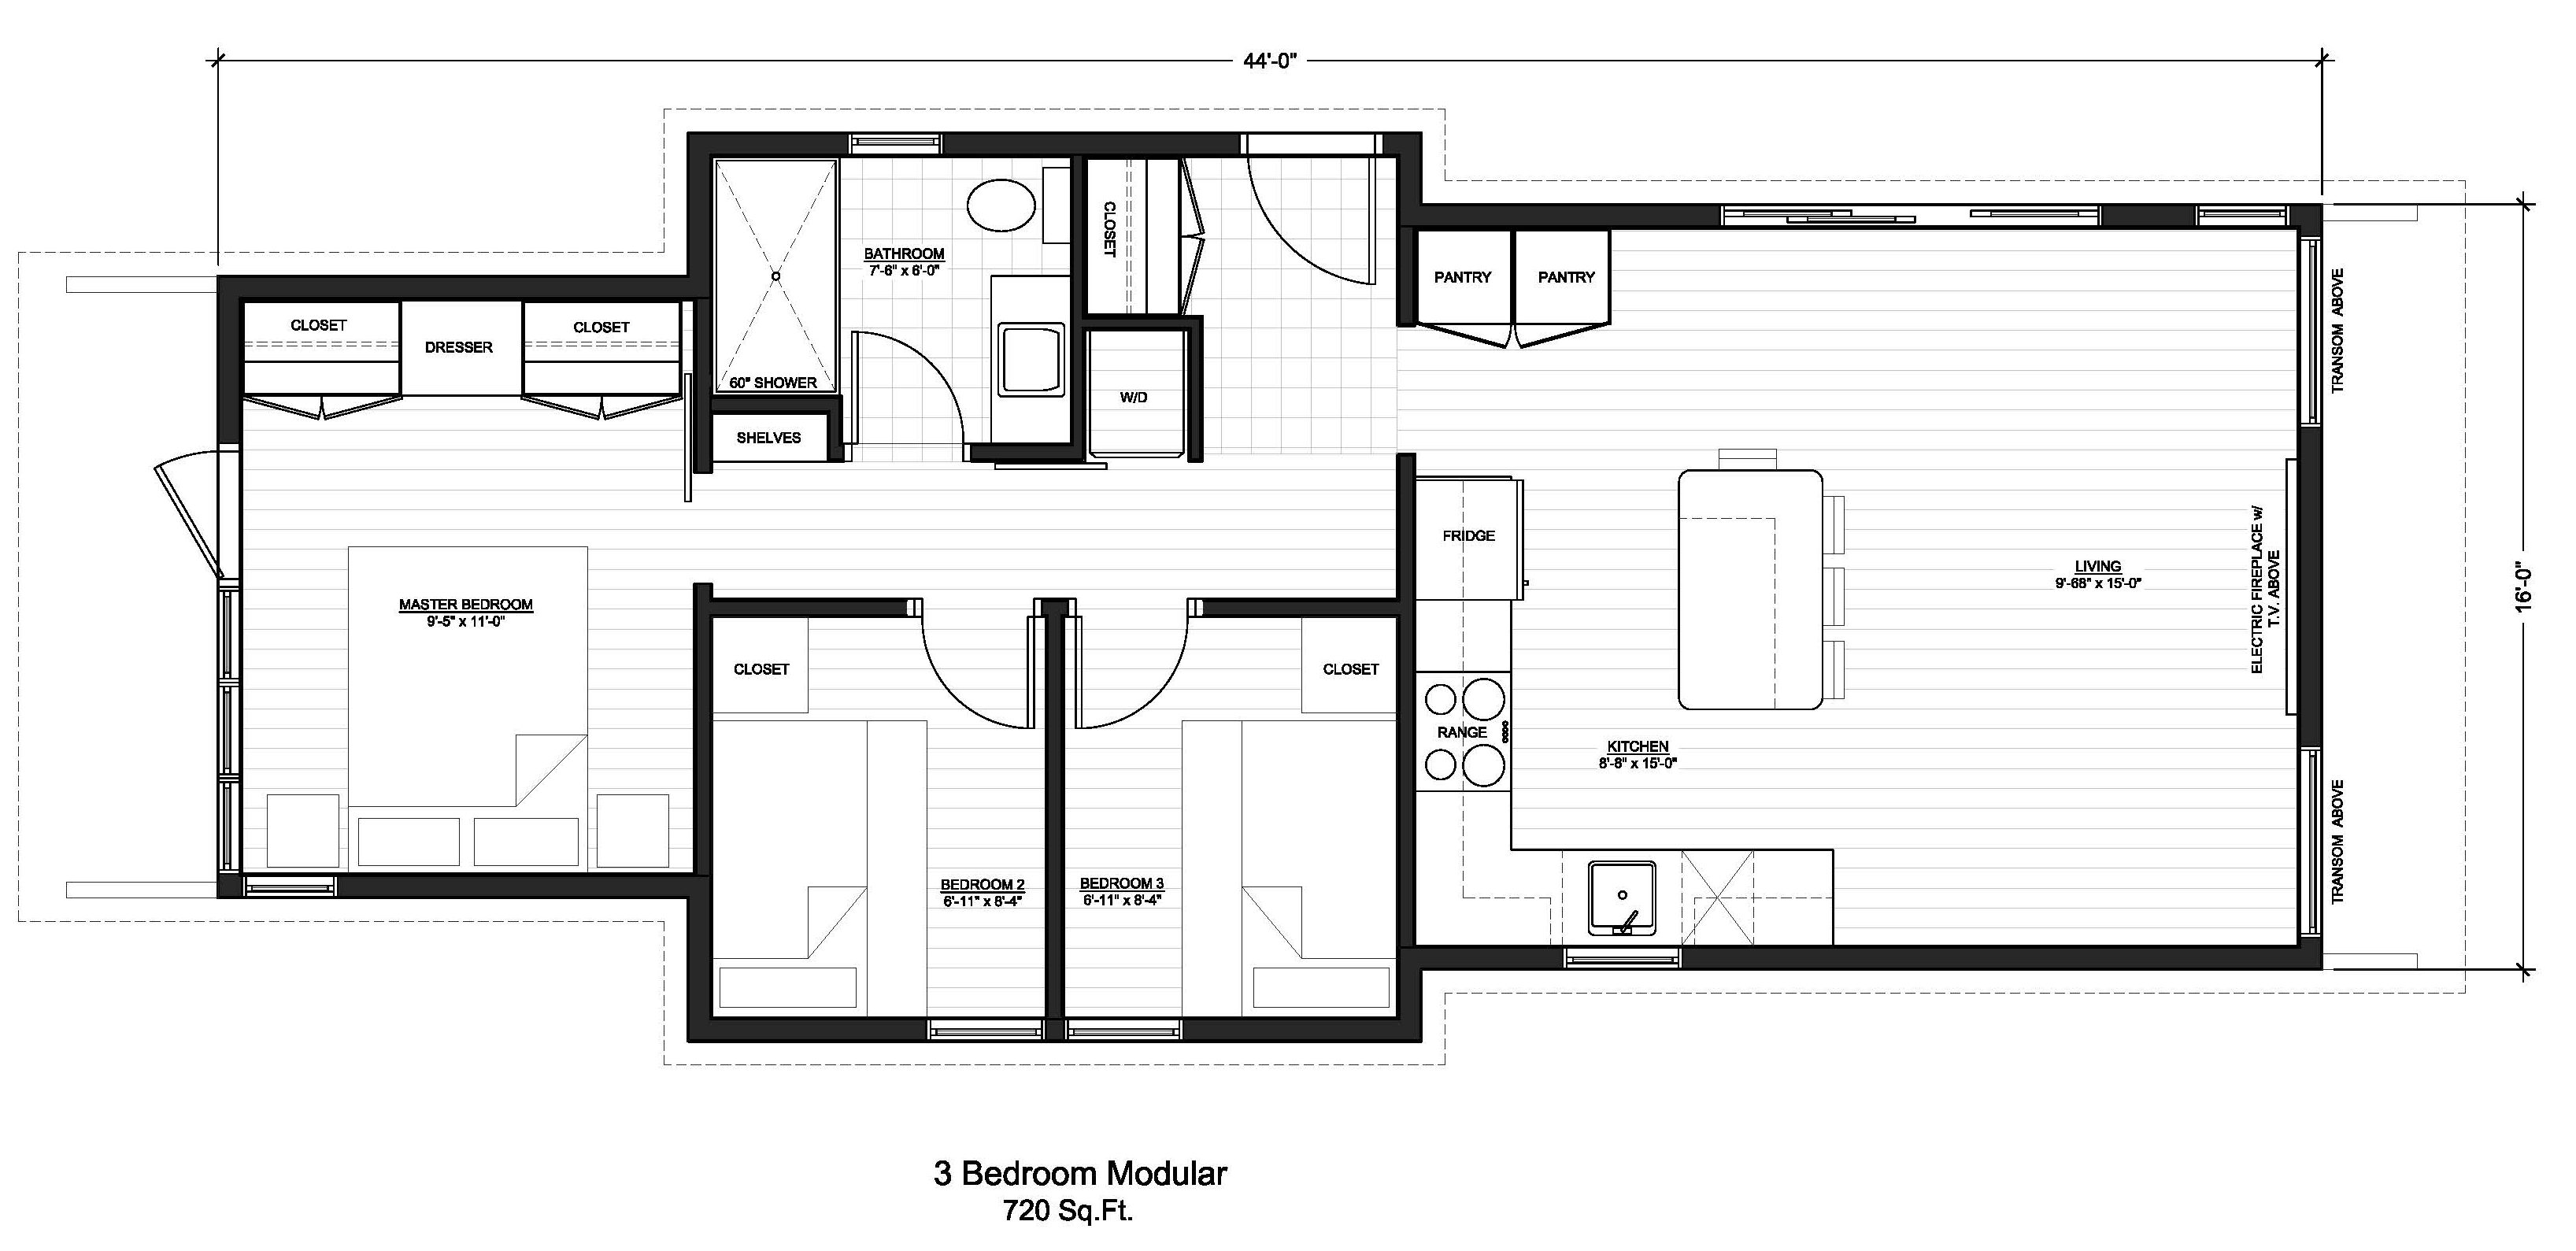 Pocket house modular homes floor plans pocket house 3 bedroom modular home floor plans